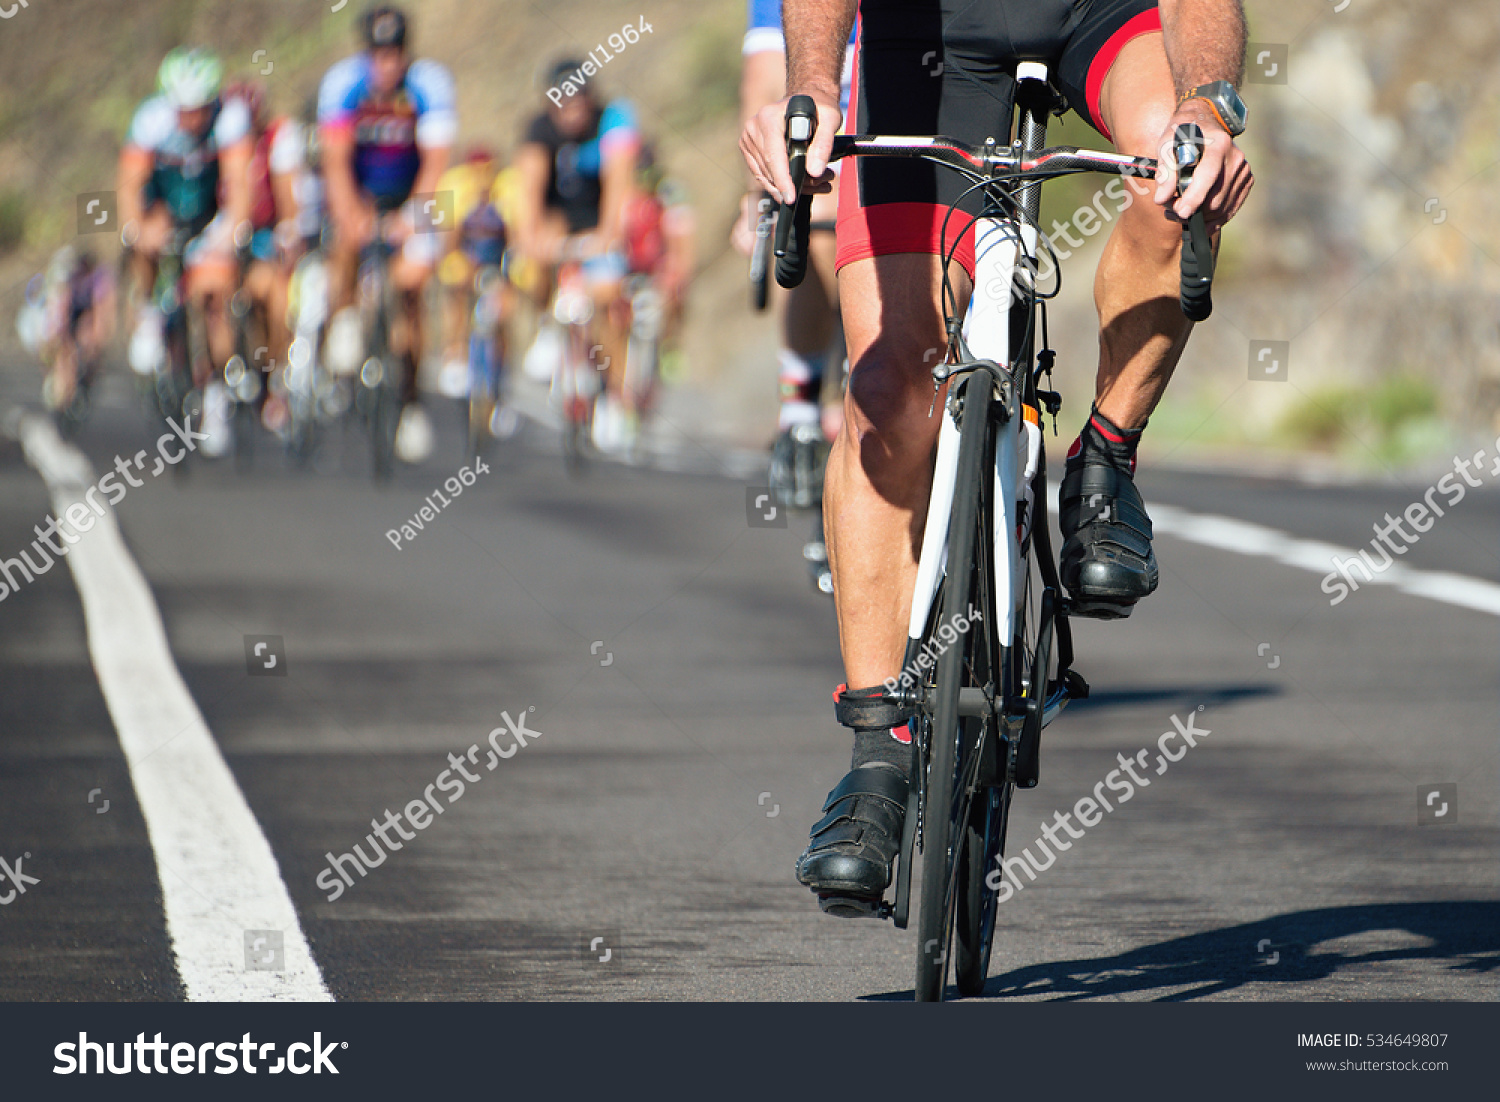 Cycling Competitioncyclist Athletes Riding Race High Stock ...